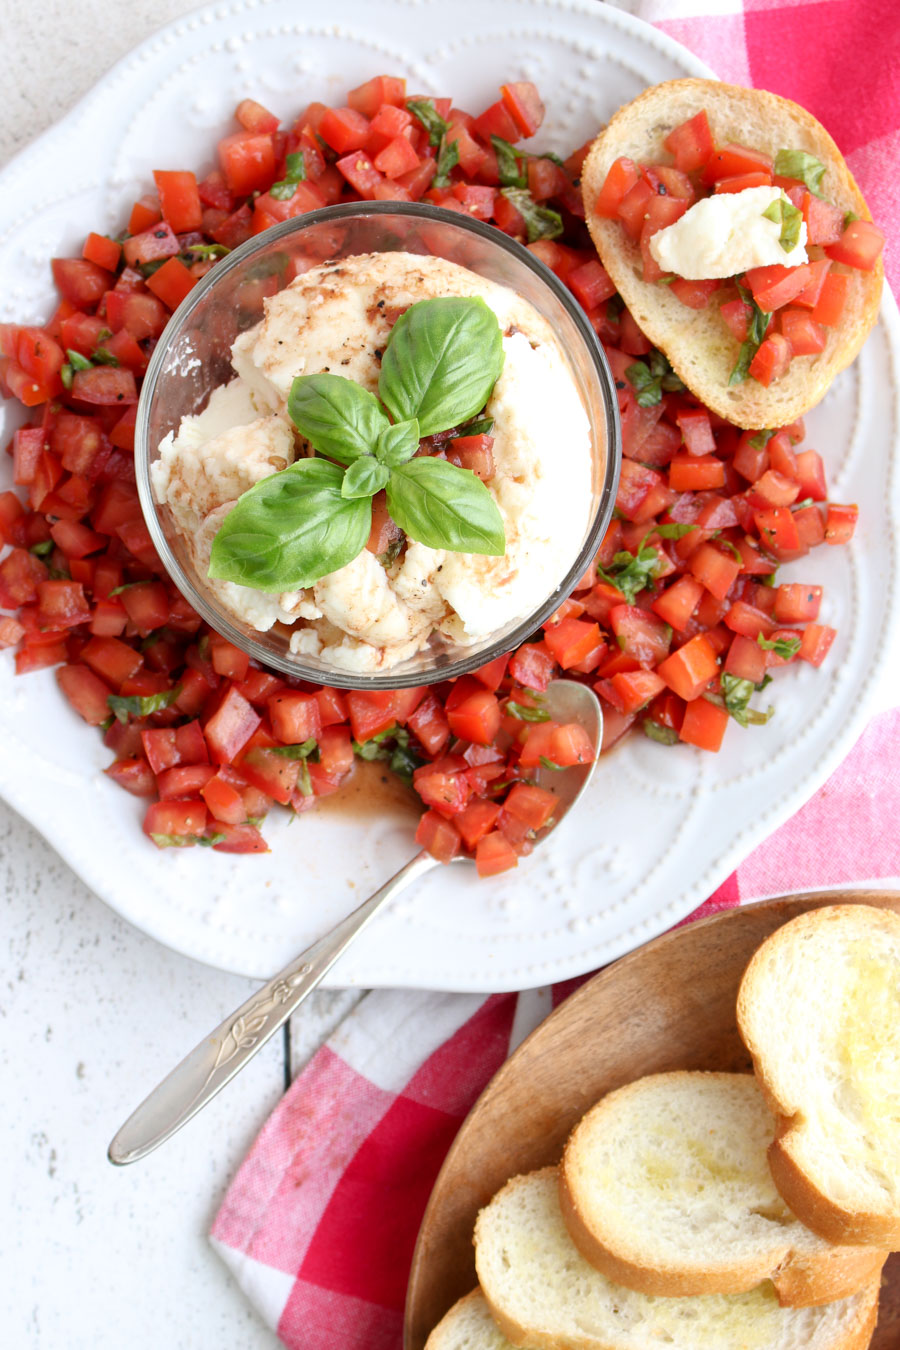 A plate of bruschetta with a bowl of fresh mozzarella in the center and toast on the side